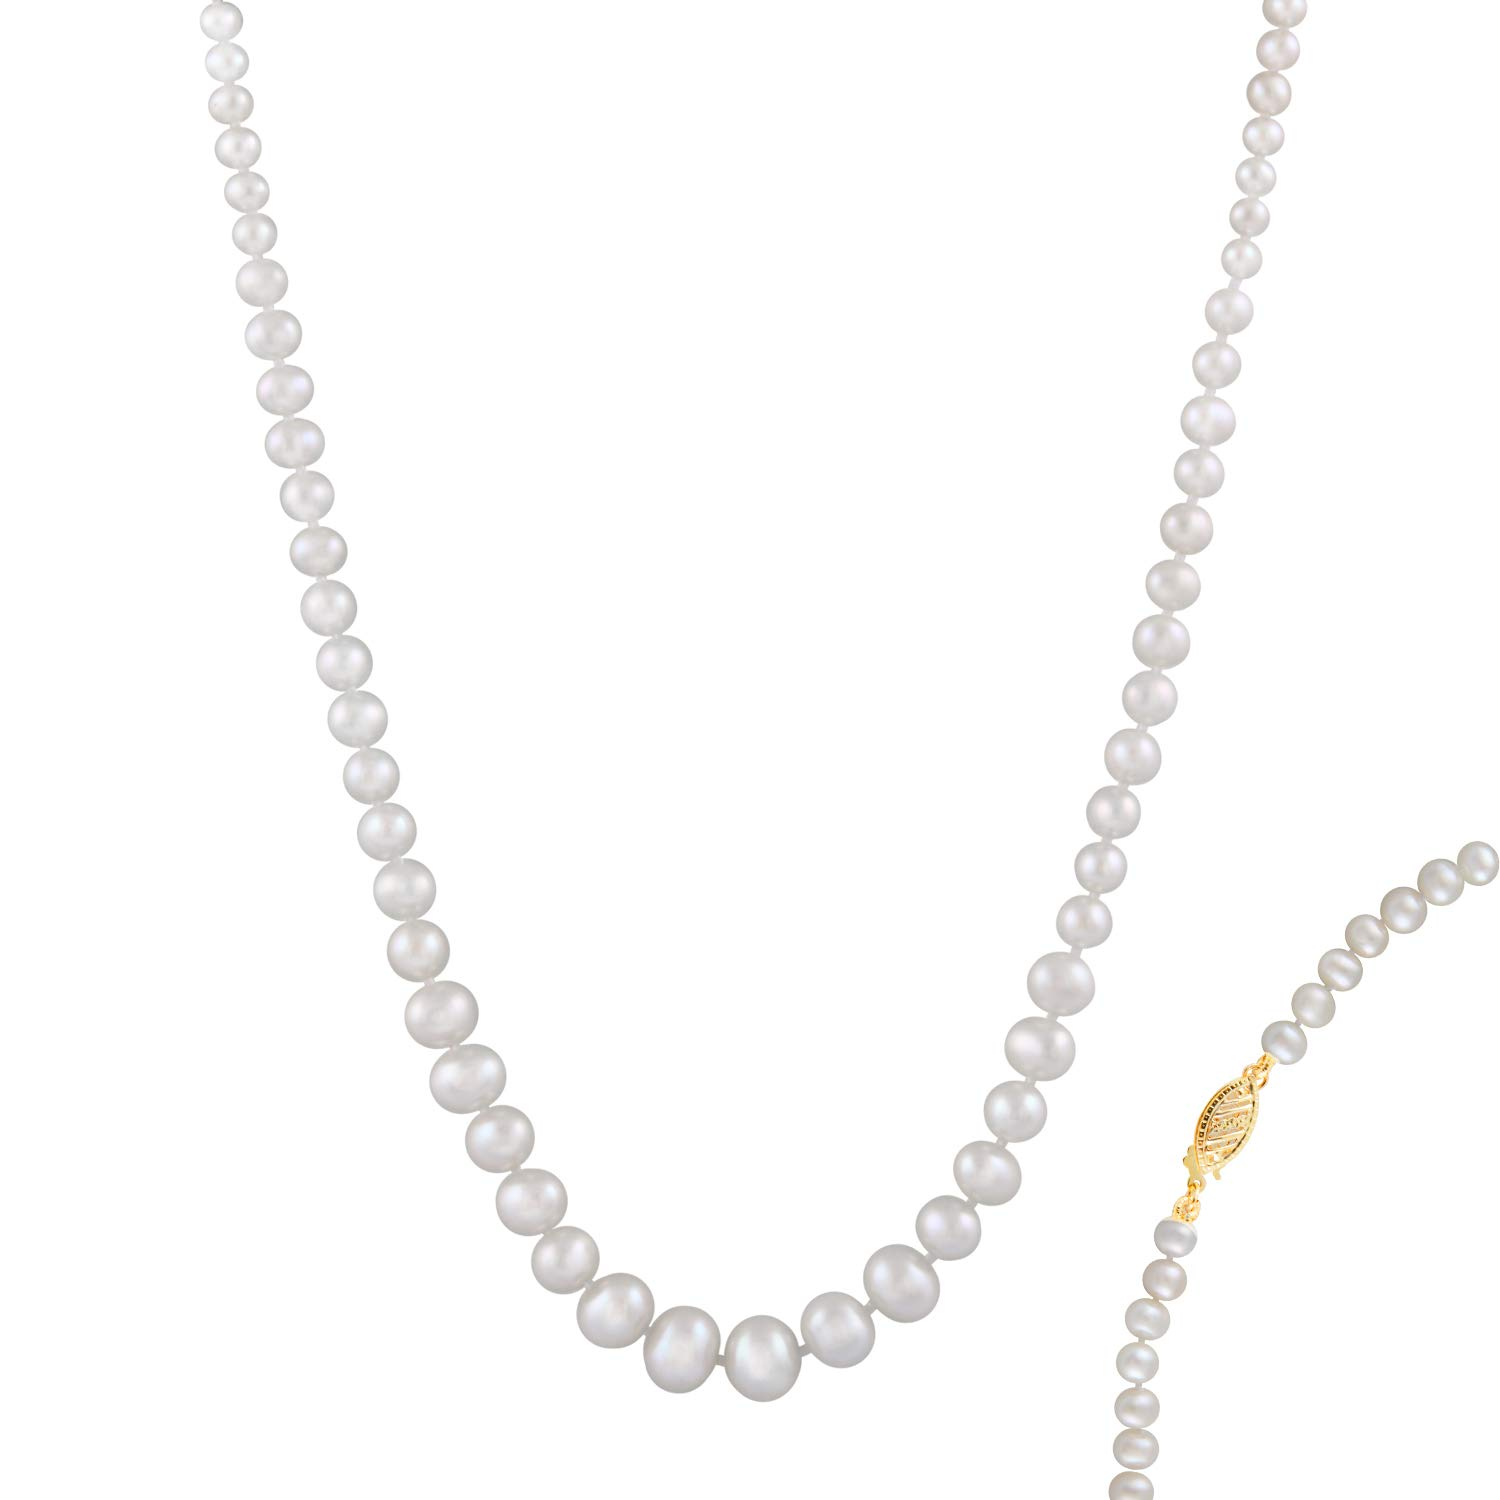 Handpicked AA Quality Freshwater Cultured Pearl